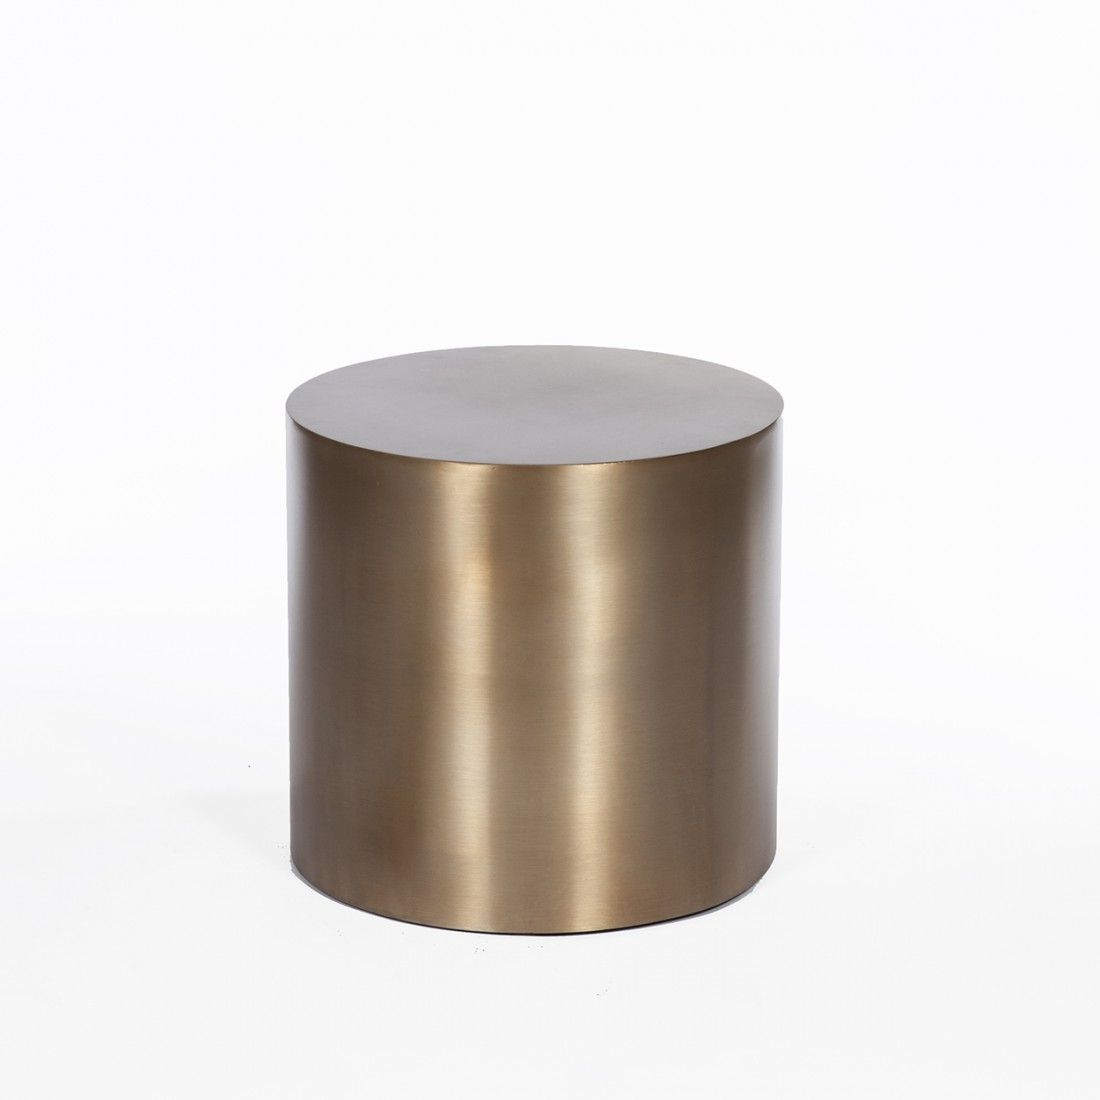 brass drum side table round precious things accent modern reproduction inspired milo baughman cherry nightstand under ikea kids wall storage farmhouse dining set bbq prep winsome